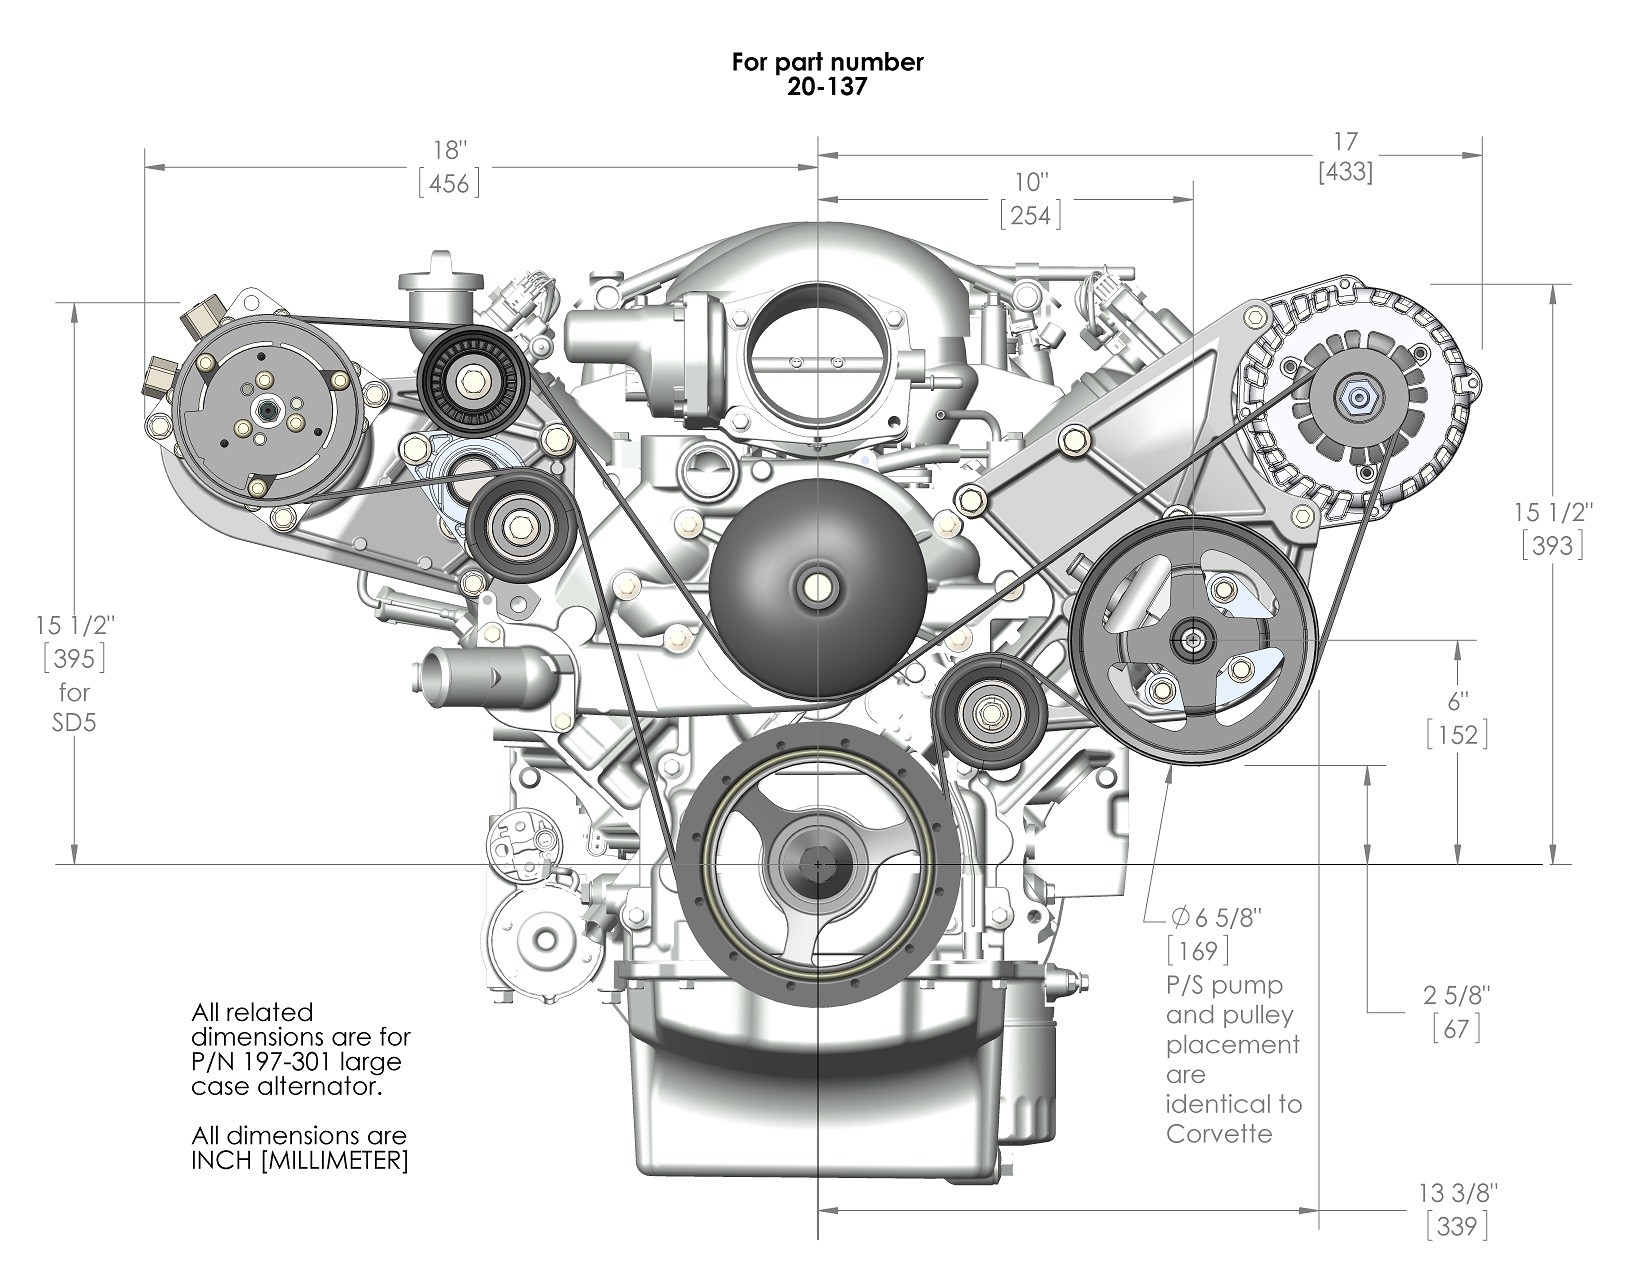 Diagram Of A Engine 20 137 Dimensions1 1650—1275 Ls Engines Pinterest Of Diagram Of A Engine